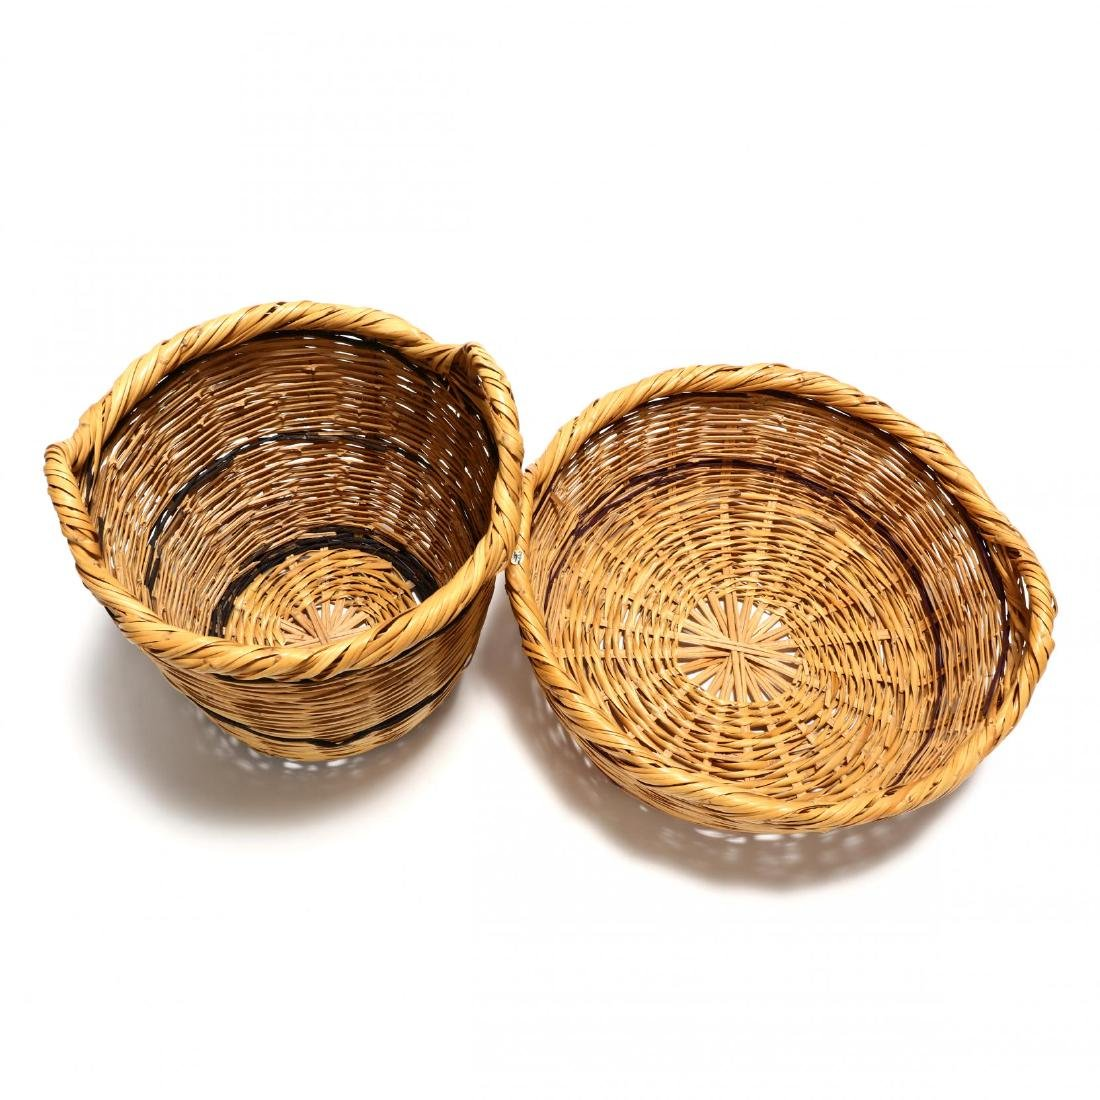 Two Large Woven Reed Baskets - 2